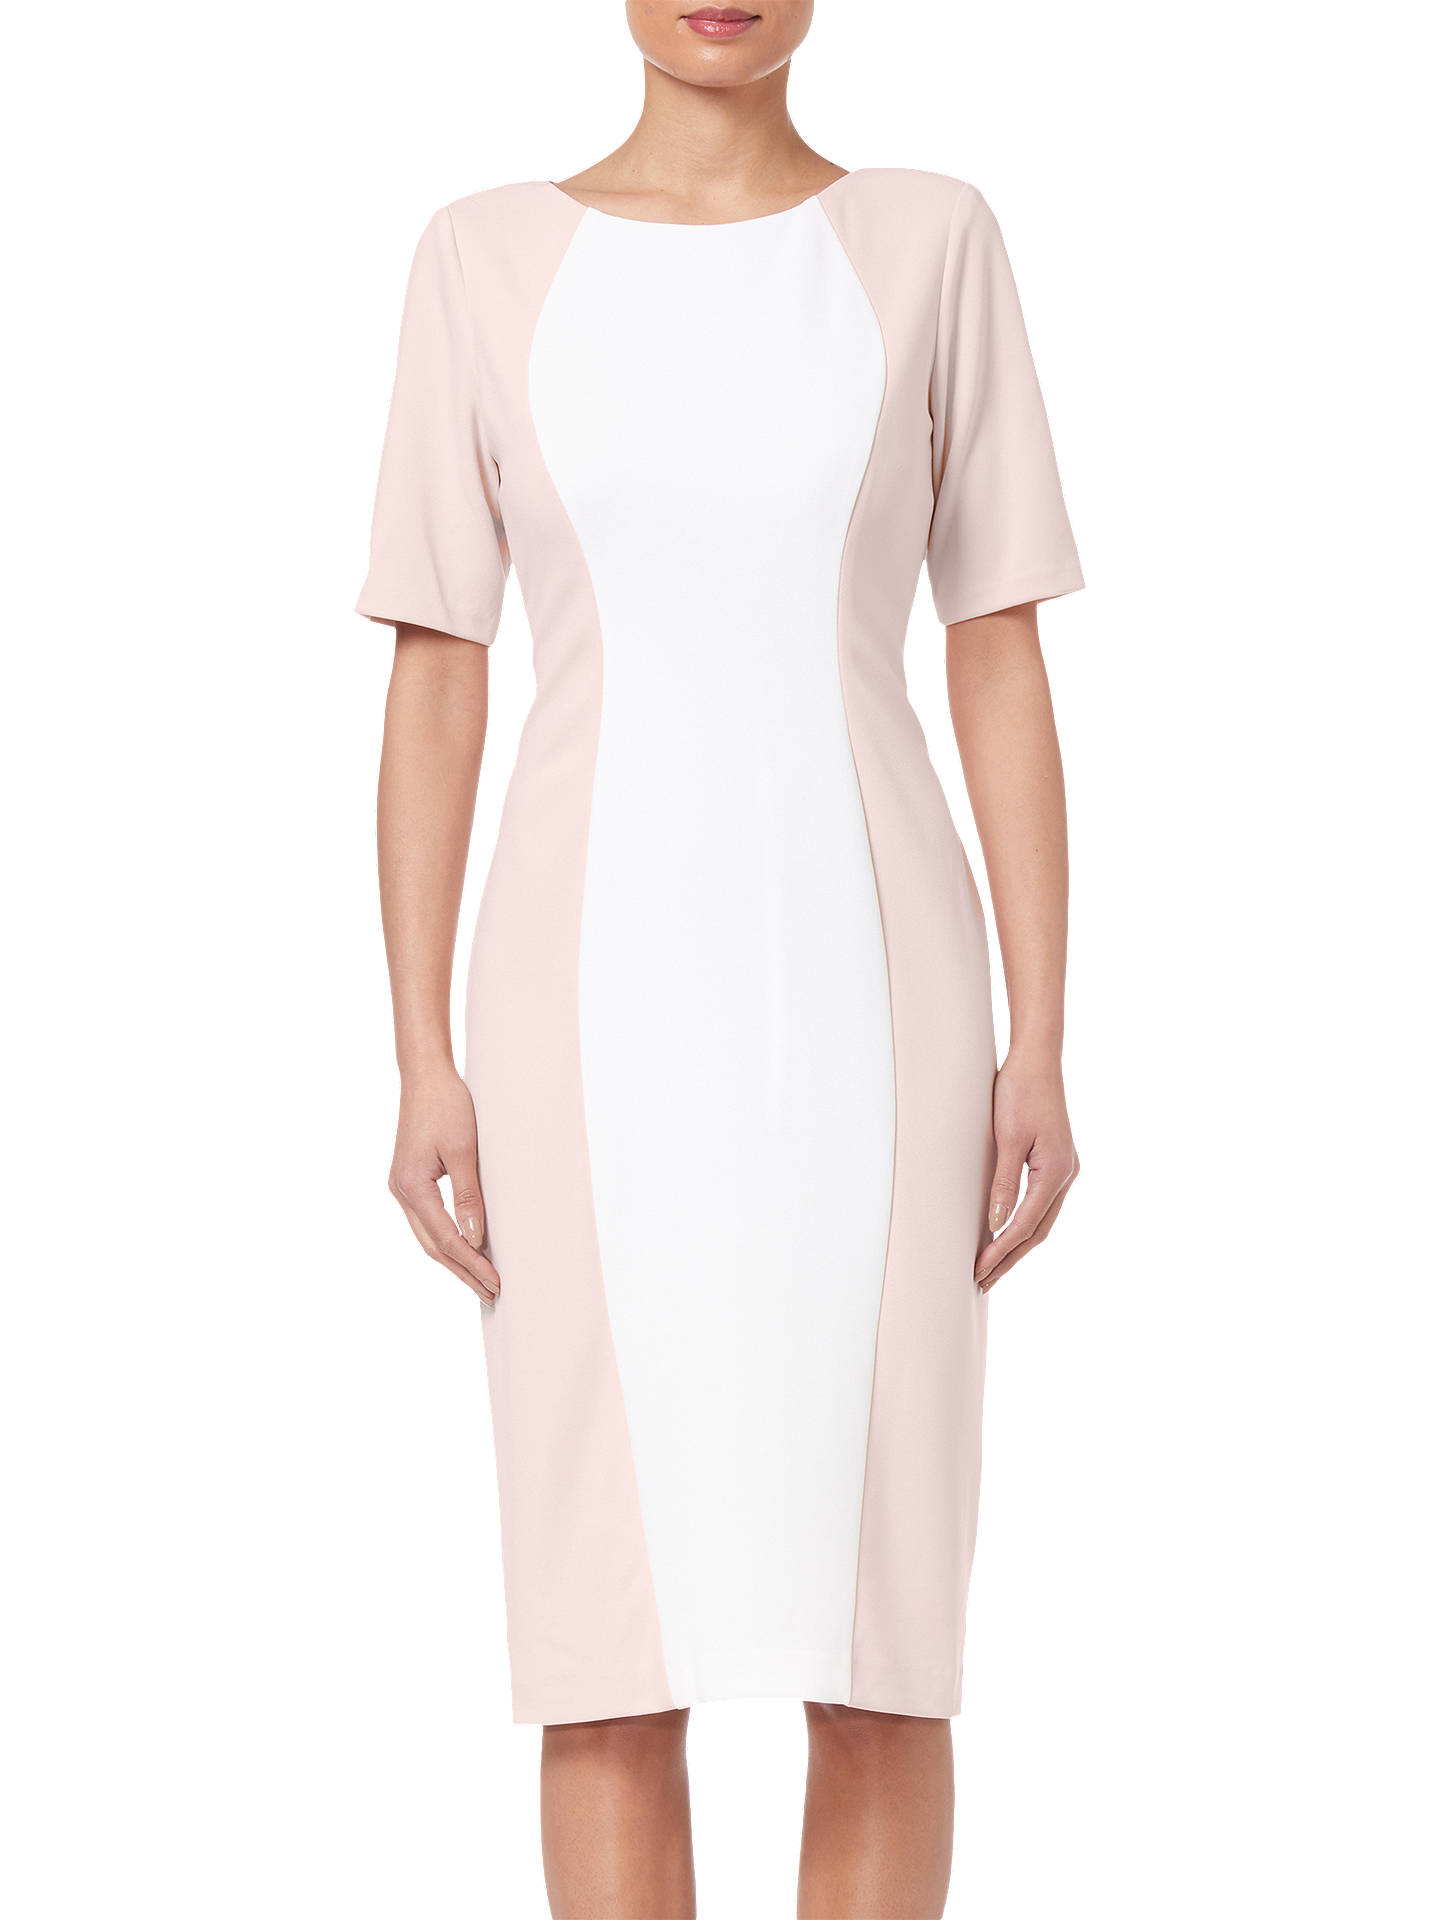 BuyAdrianna Papell Crepe Colorblock Dress, Blush/Ivory, 8 Online at johnlewis.com